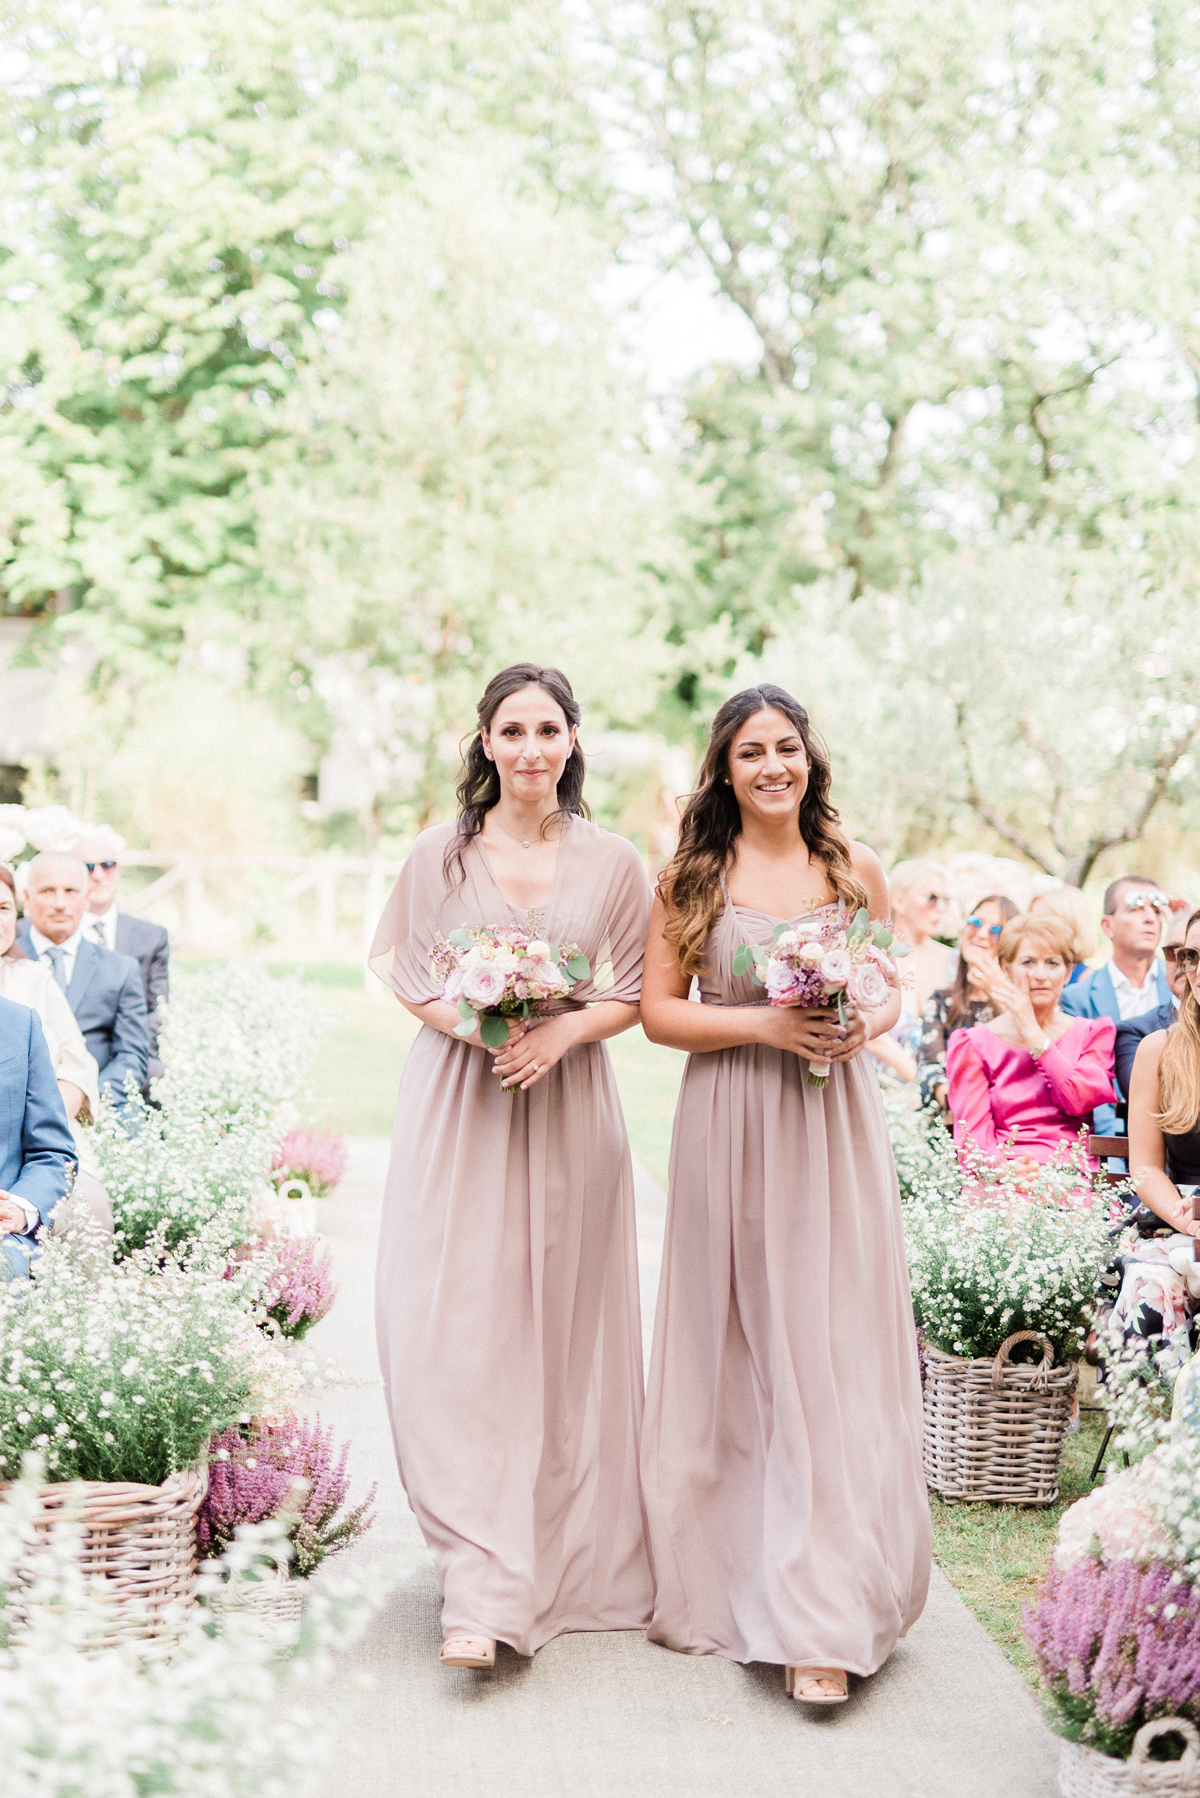 two bridesmaids walking down wedding aisle wearing mauve dresses